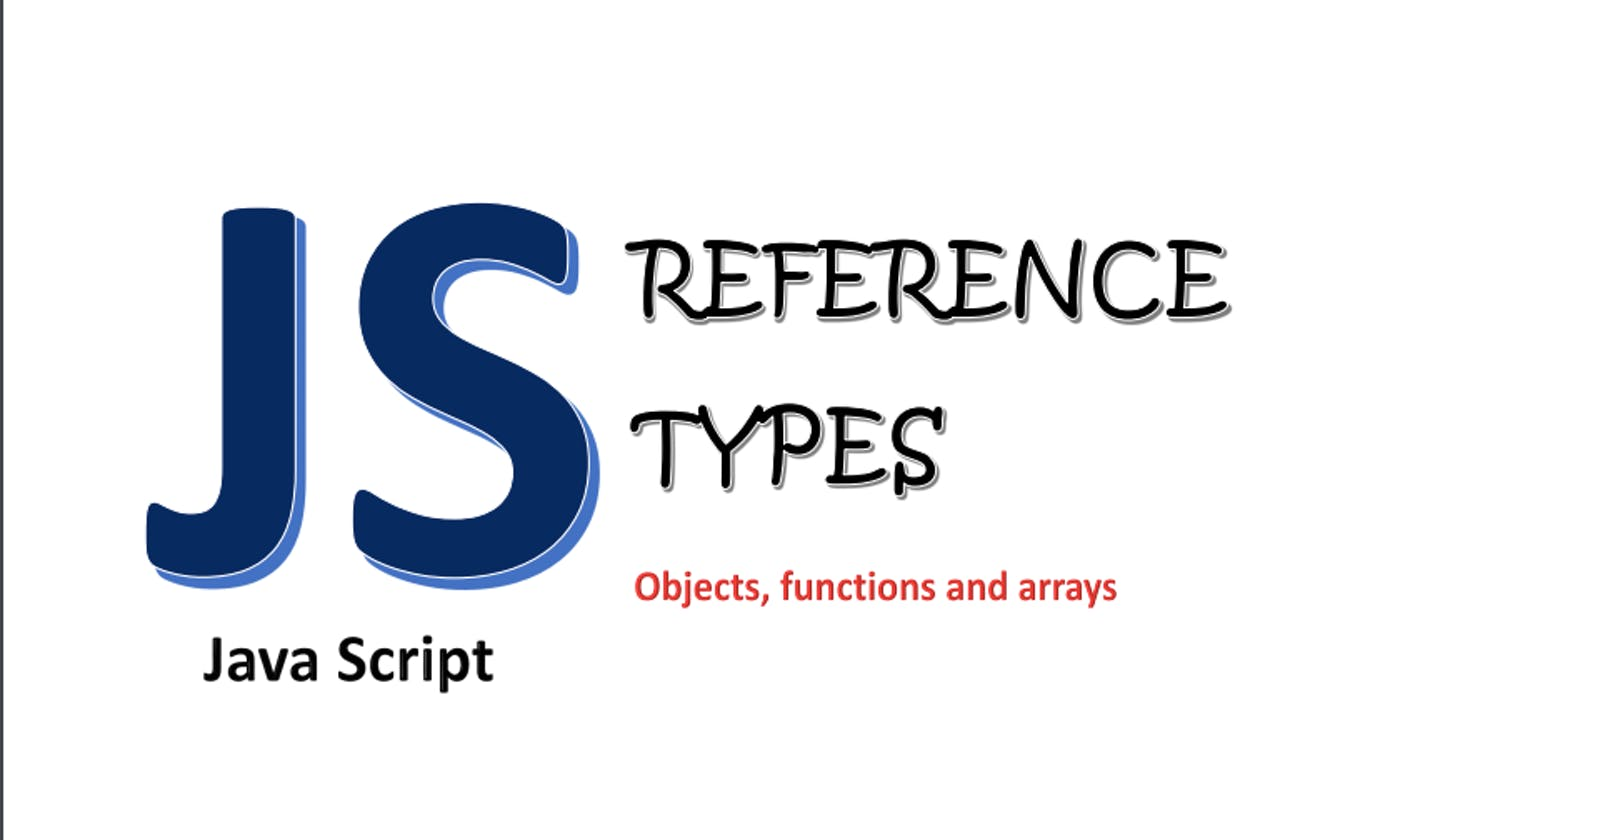 Introduction to reference types in JavaScript